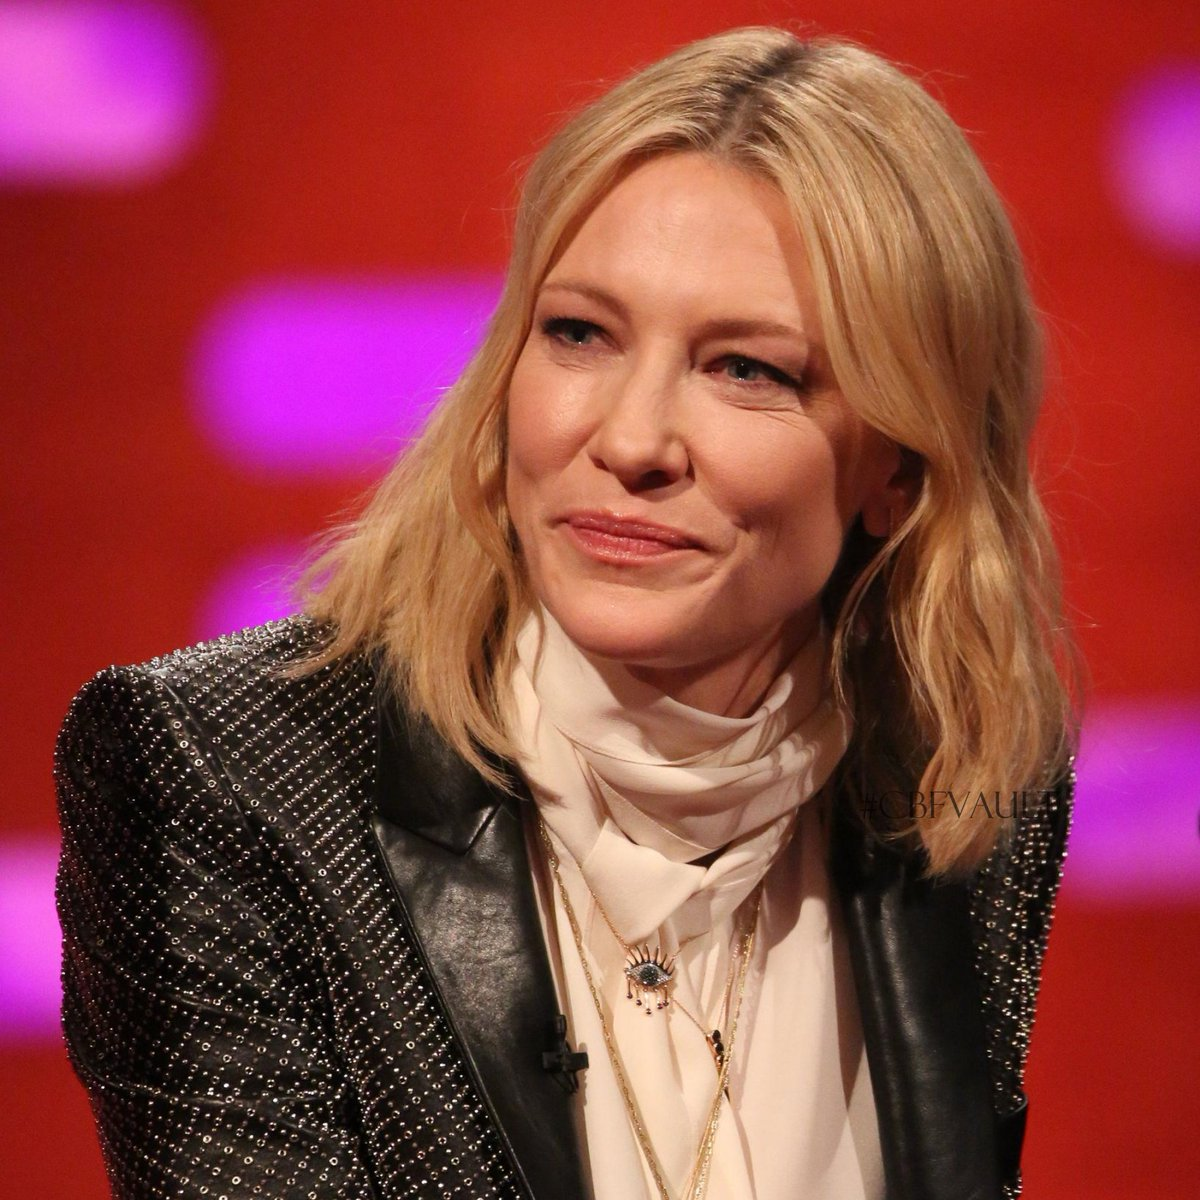 From the Cate Blanchett Fan's Vault || The Graham Norton Show - June 15th, 2018 ----- :  https:// pictures.cate-blanchett.com/thumbnails.php ?album=3412  …  ----- Watch it here:  https://www. youtube.com/watch?v=uEwN9B APp38  …  ----- #cateblanchett #fromthecbfvault #cbfvault #1yearsago #actress #grahamnorton #talkshow #oceans8 #london<br>http://pic.twitter.com/p598NKcMxy